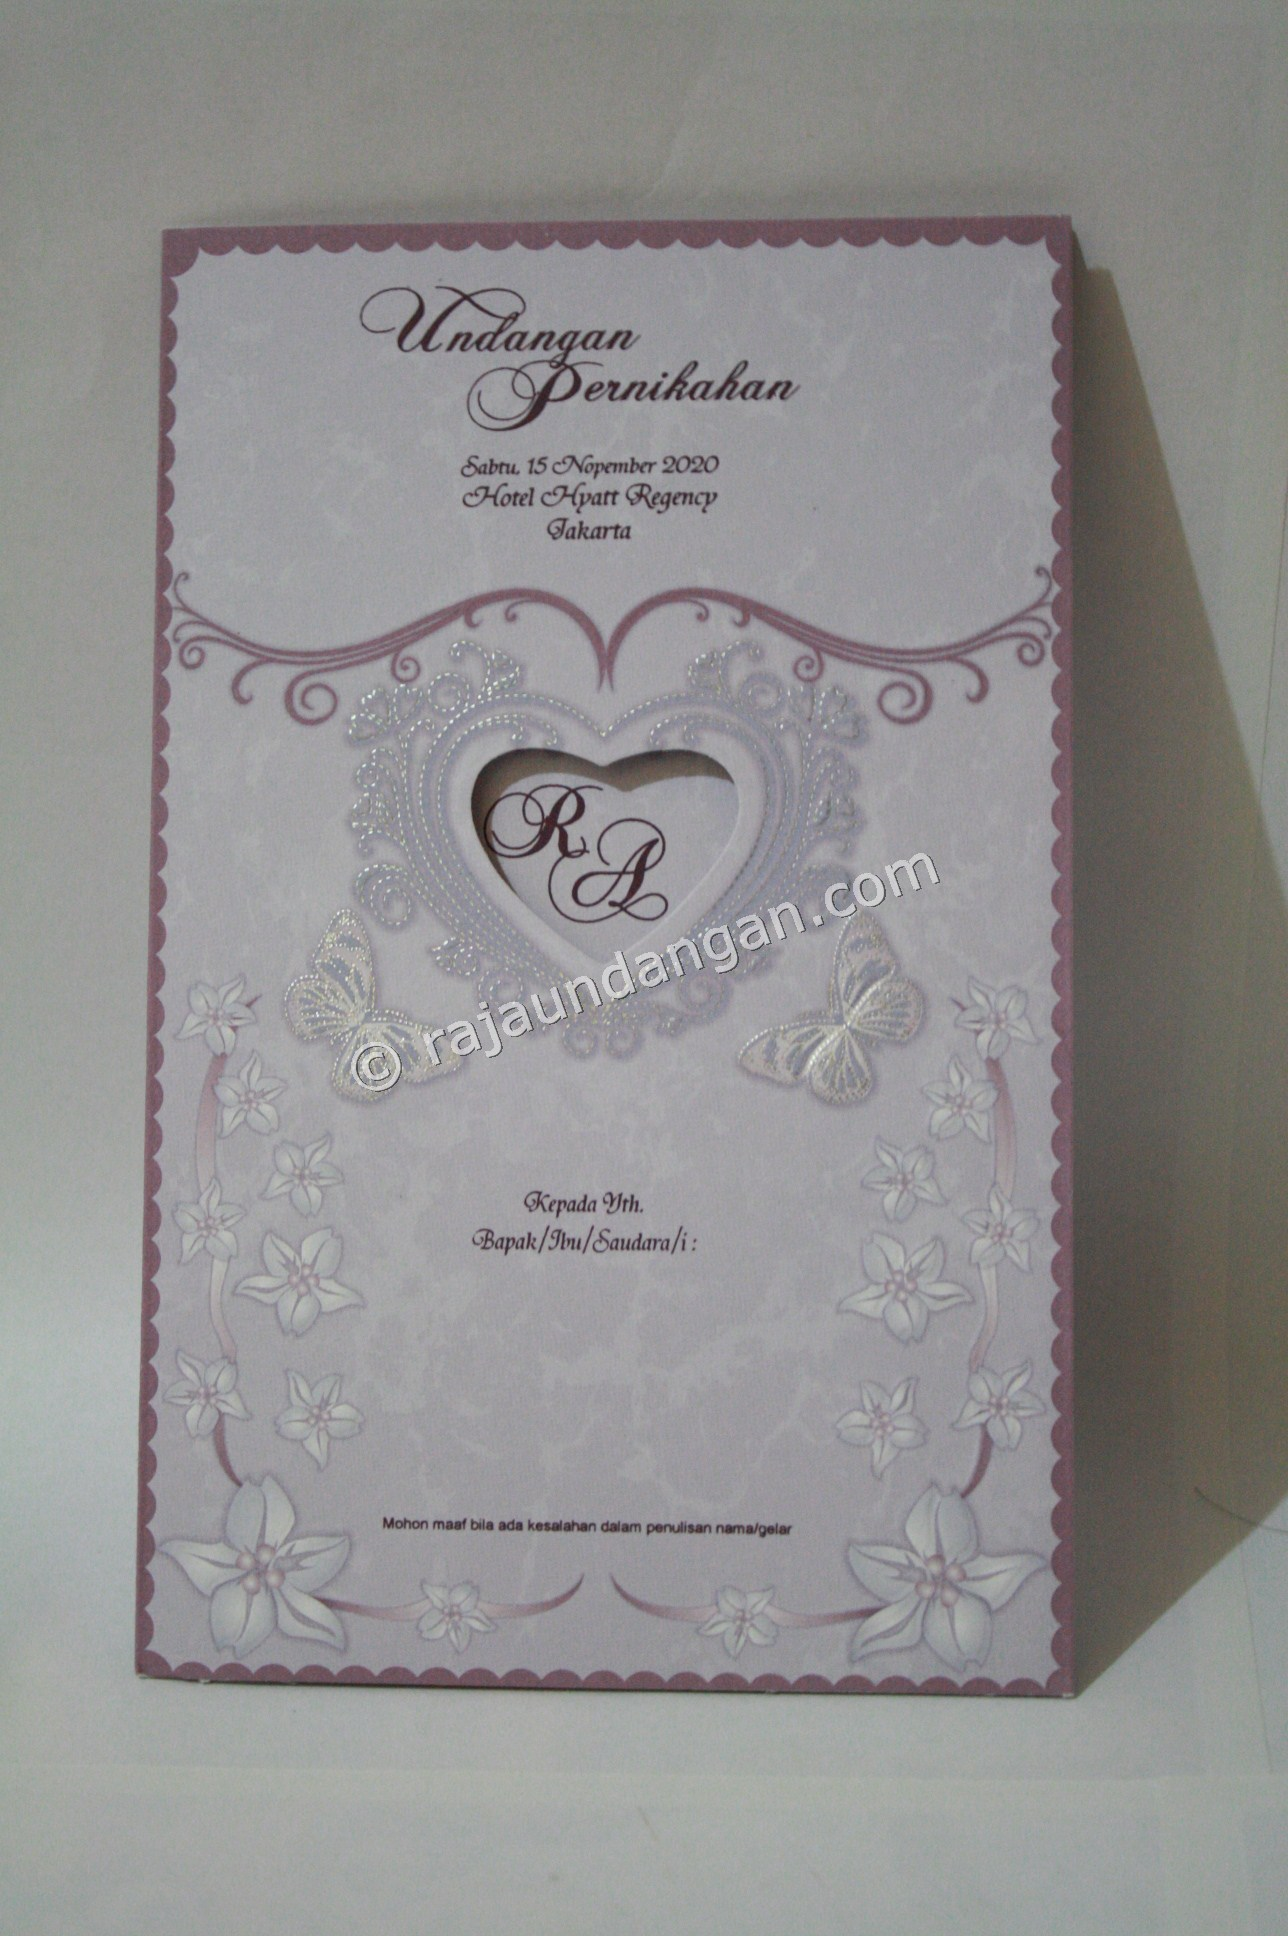 Undangan Pernikahan Softcover ED 26 1 - Percetakan Wedding Invitations Murah di Kapasan